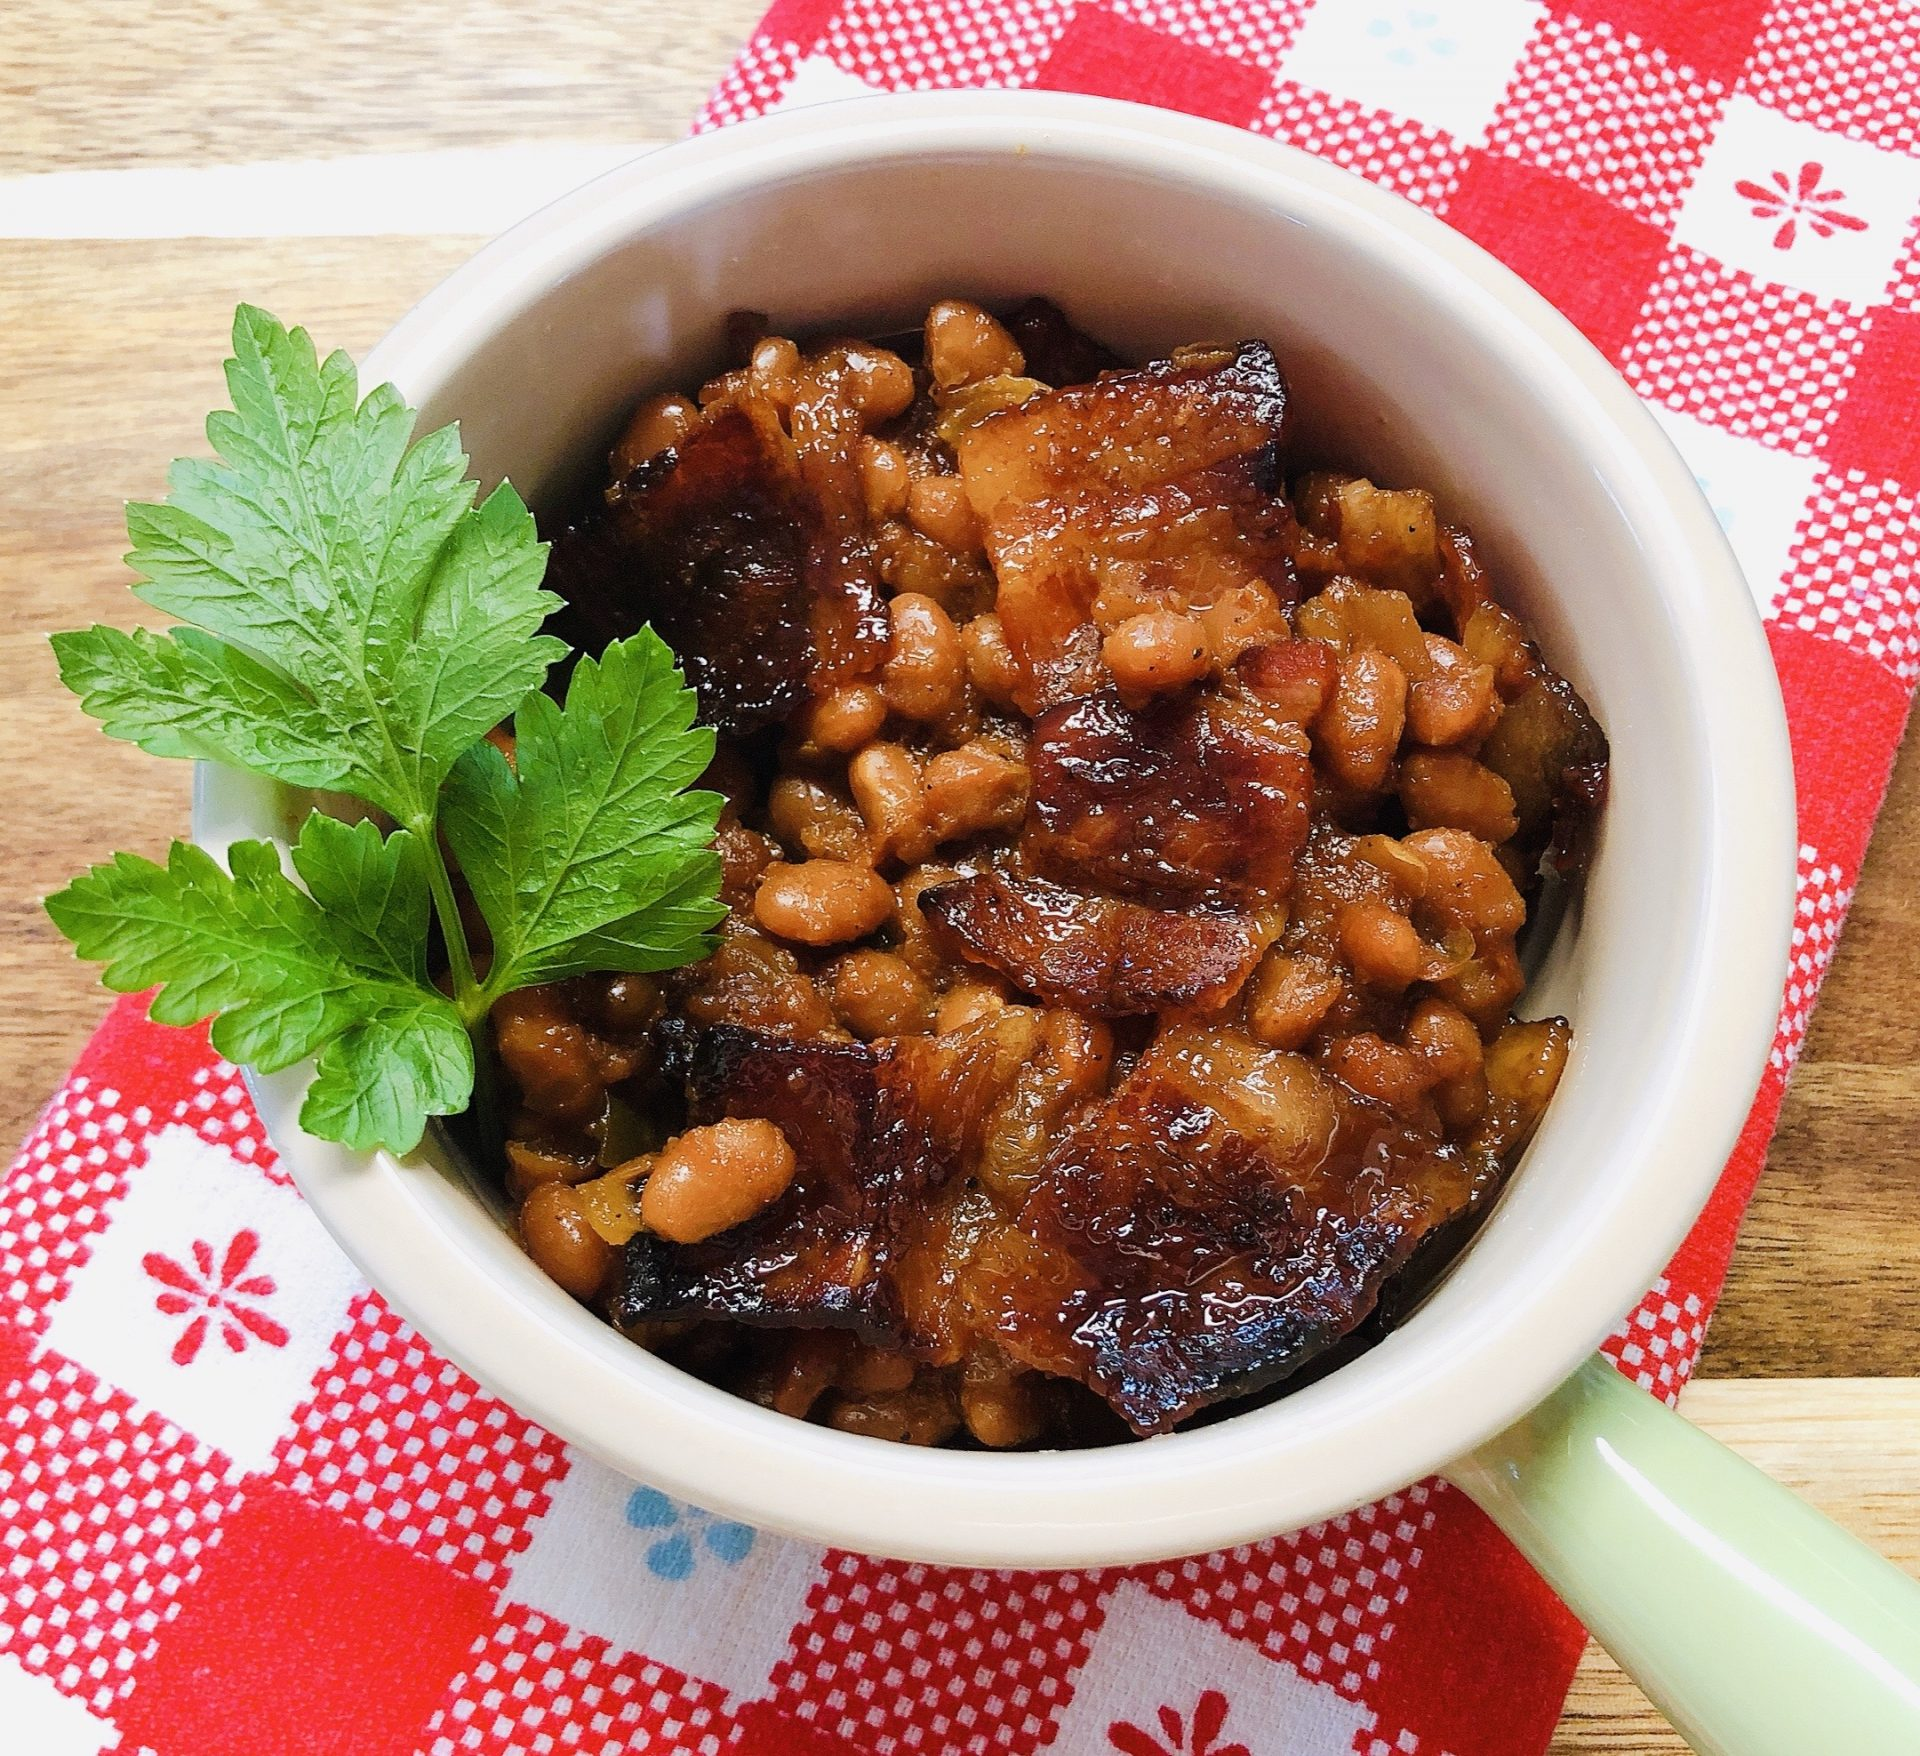 spicy-baked-beans-with-bacon-heather-lucilles-kitchen-food-blog